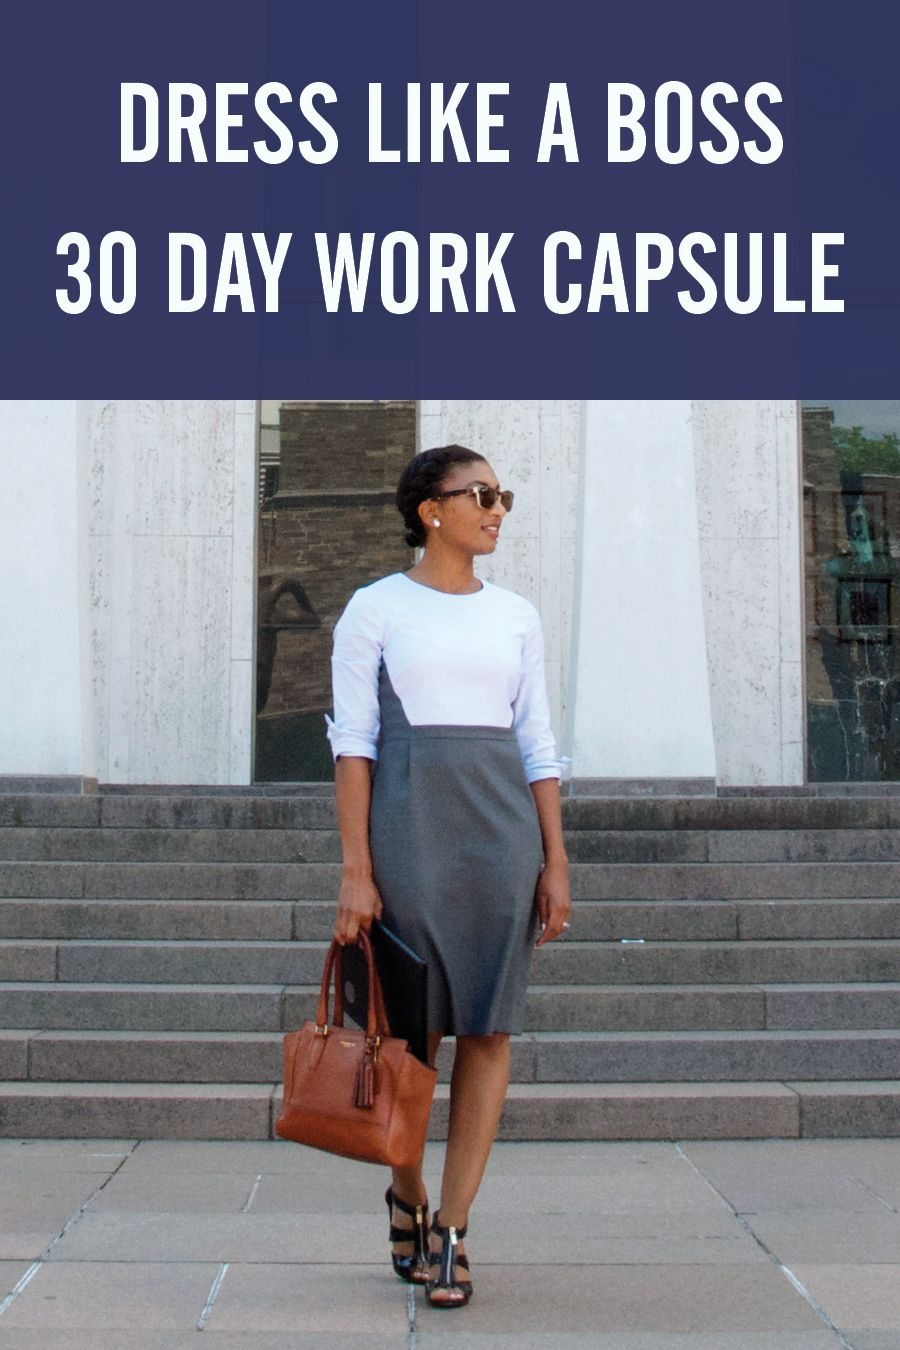 960a06d49 How to create a capsule wardrobe of 30 work outfits from 23 clothing items  using Stylebook